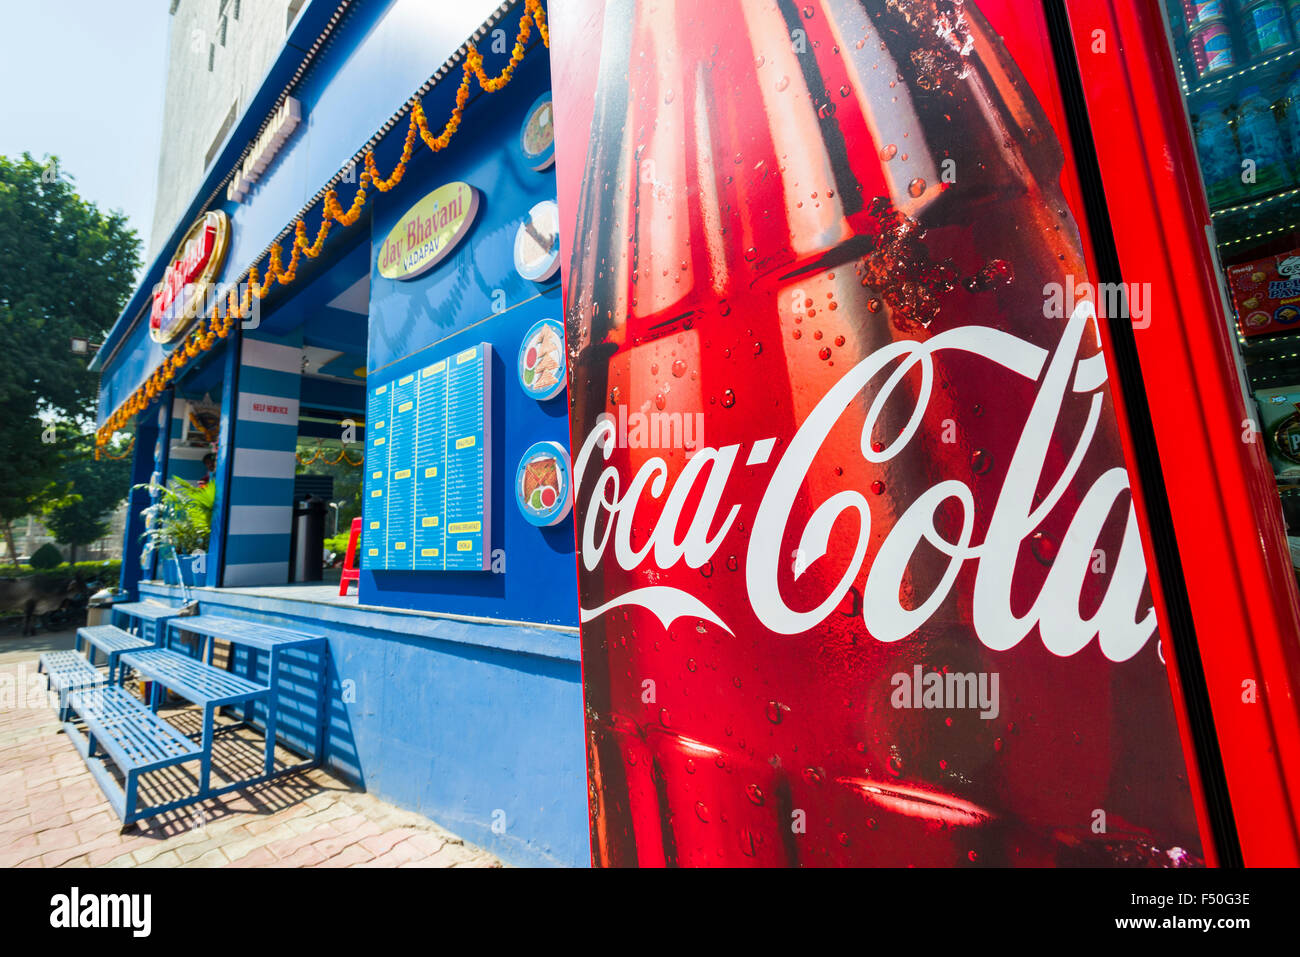 A big advertisement for Coca Cola at the entrance of a new, western style restaurant - Stock Image